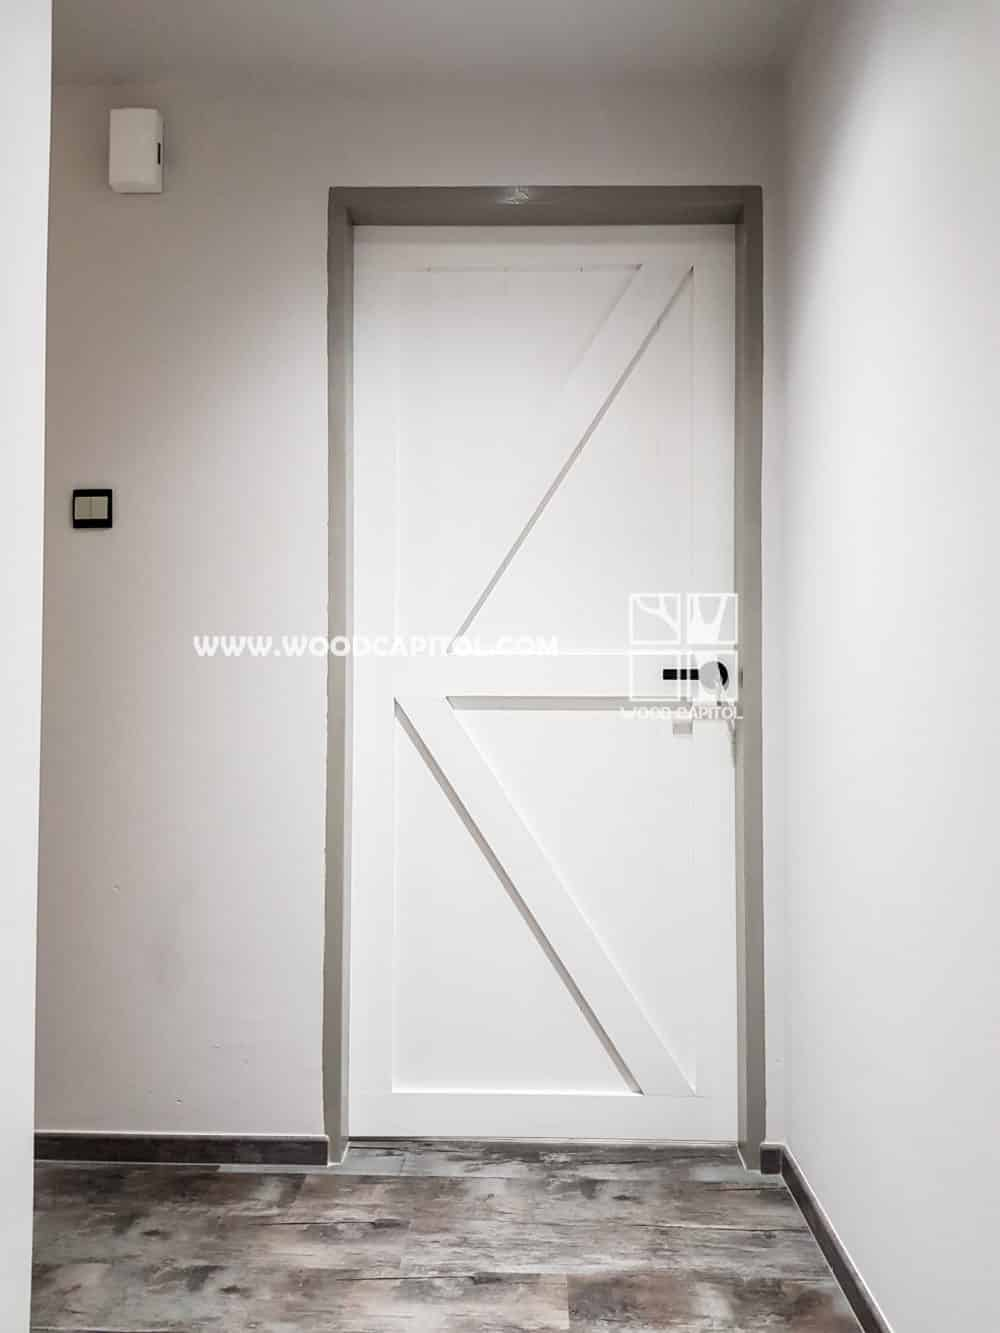 Wood Capitol Wooden Door Singapore 2